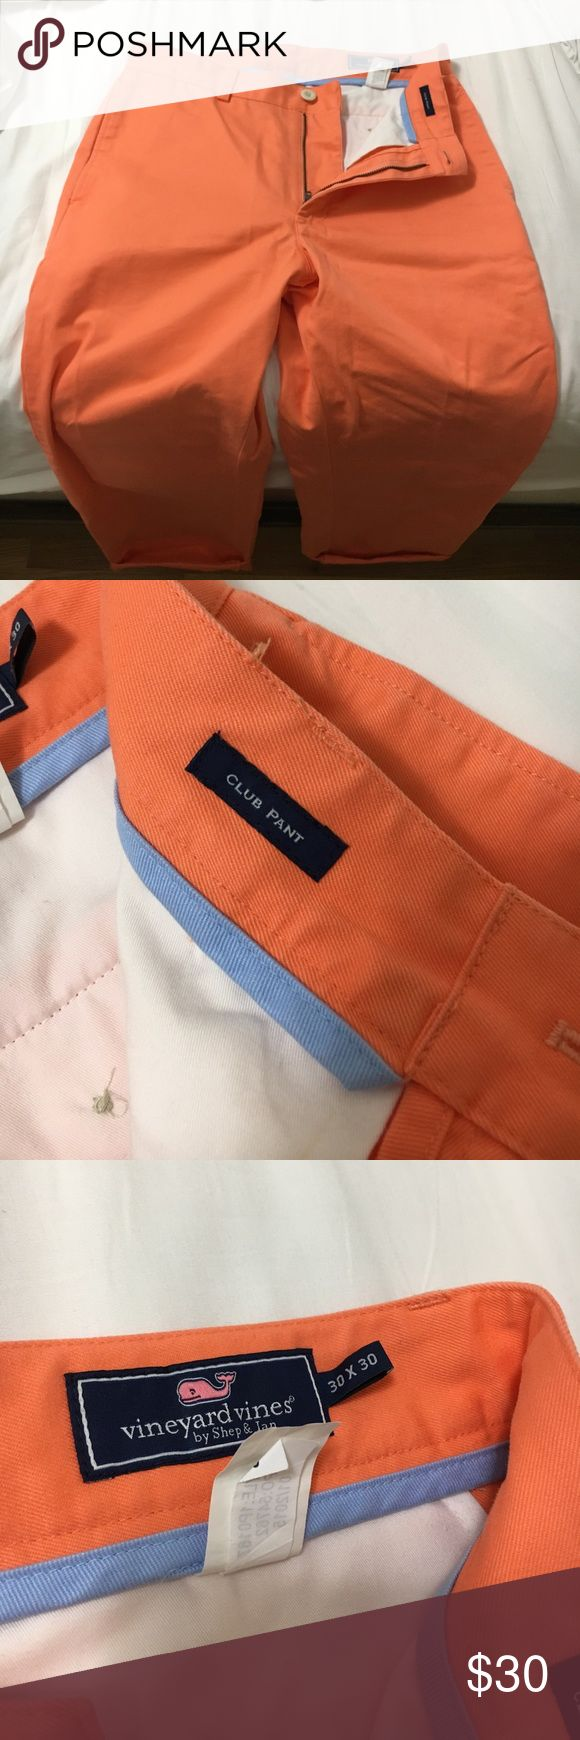 Vineyard Vines Men's Pant 30x30 For sale is a pair of Vineyard Vines men's pants, size 30x30. They are vibrant orange; they were worn once, and without any imperfections. Vineyard Vines Pants Chinos & Khakis